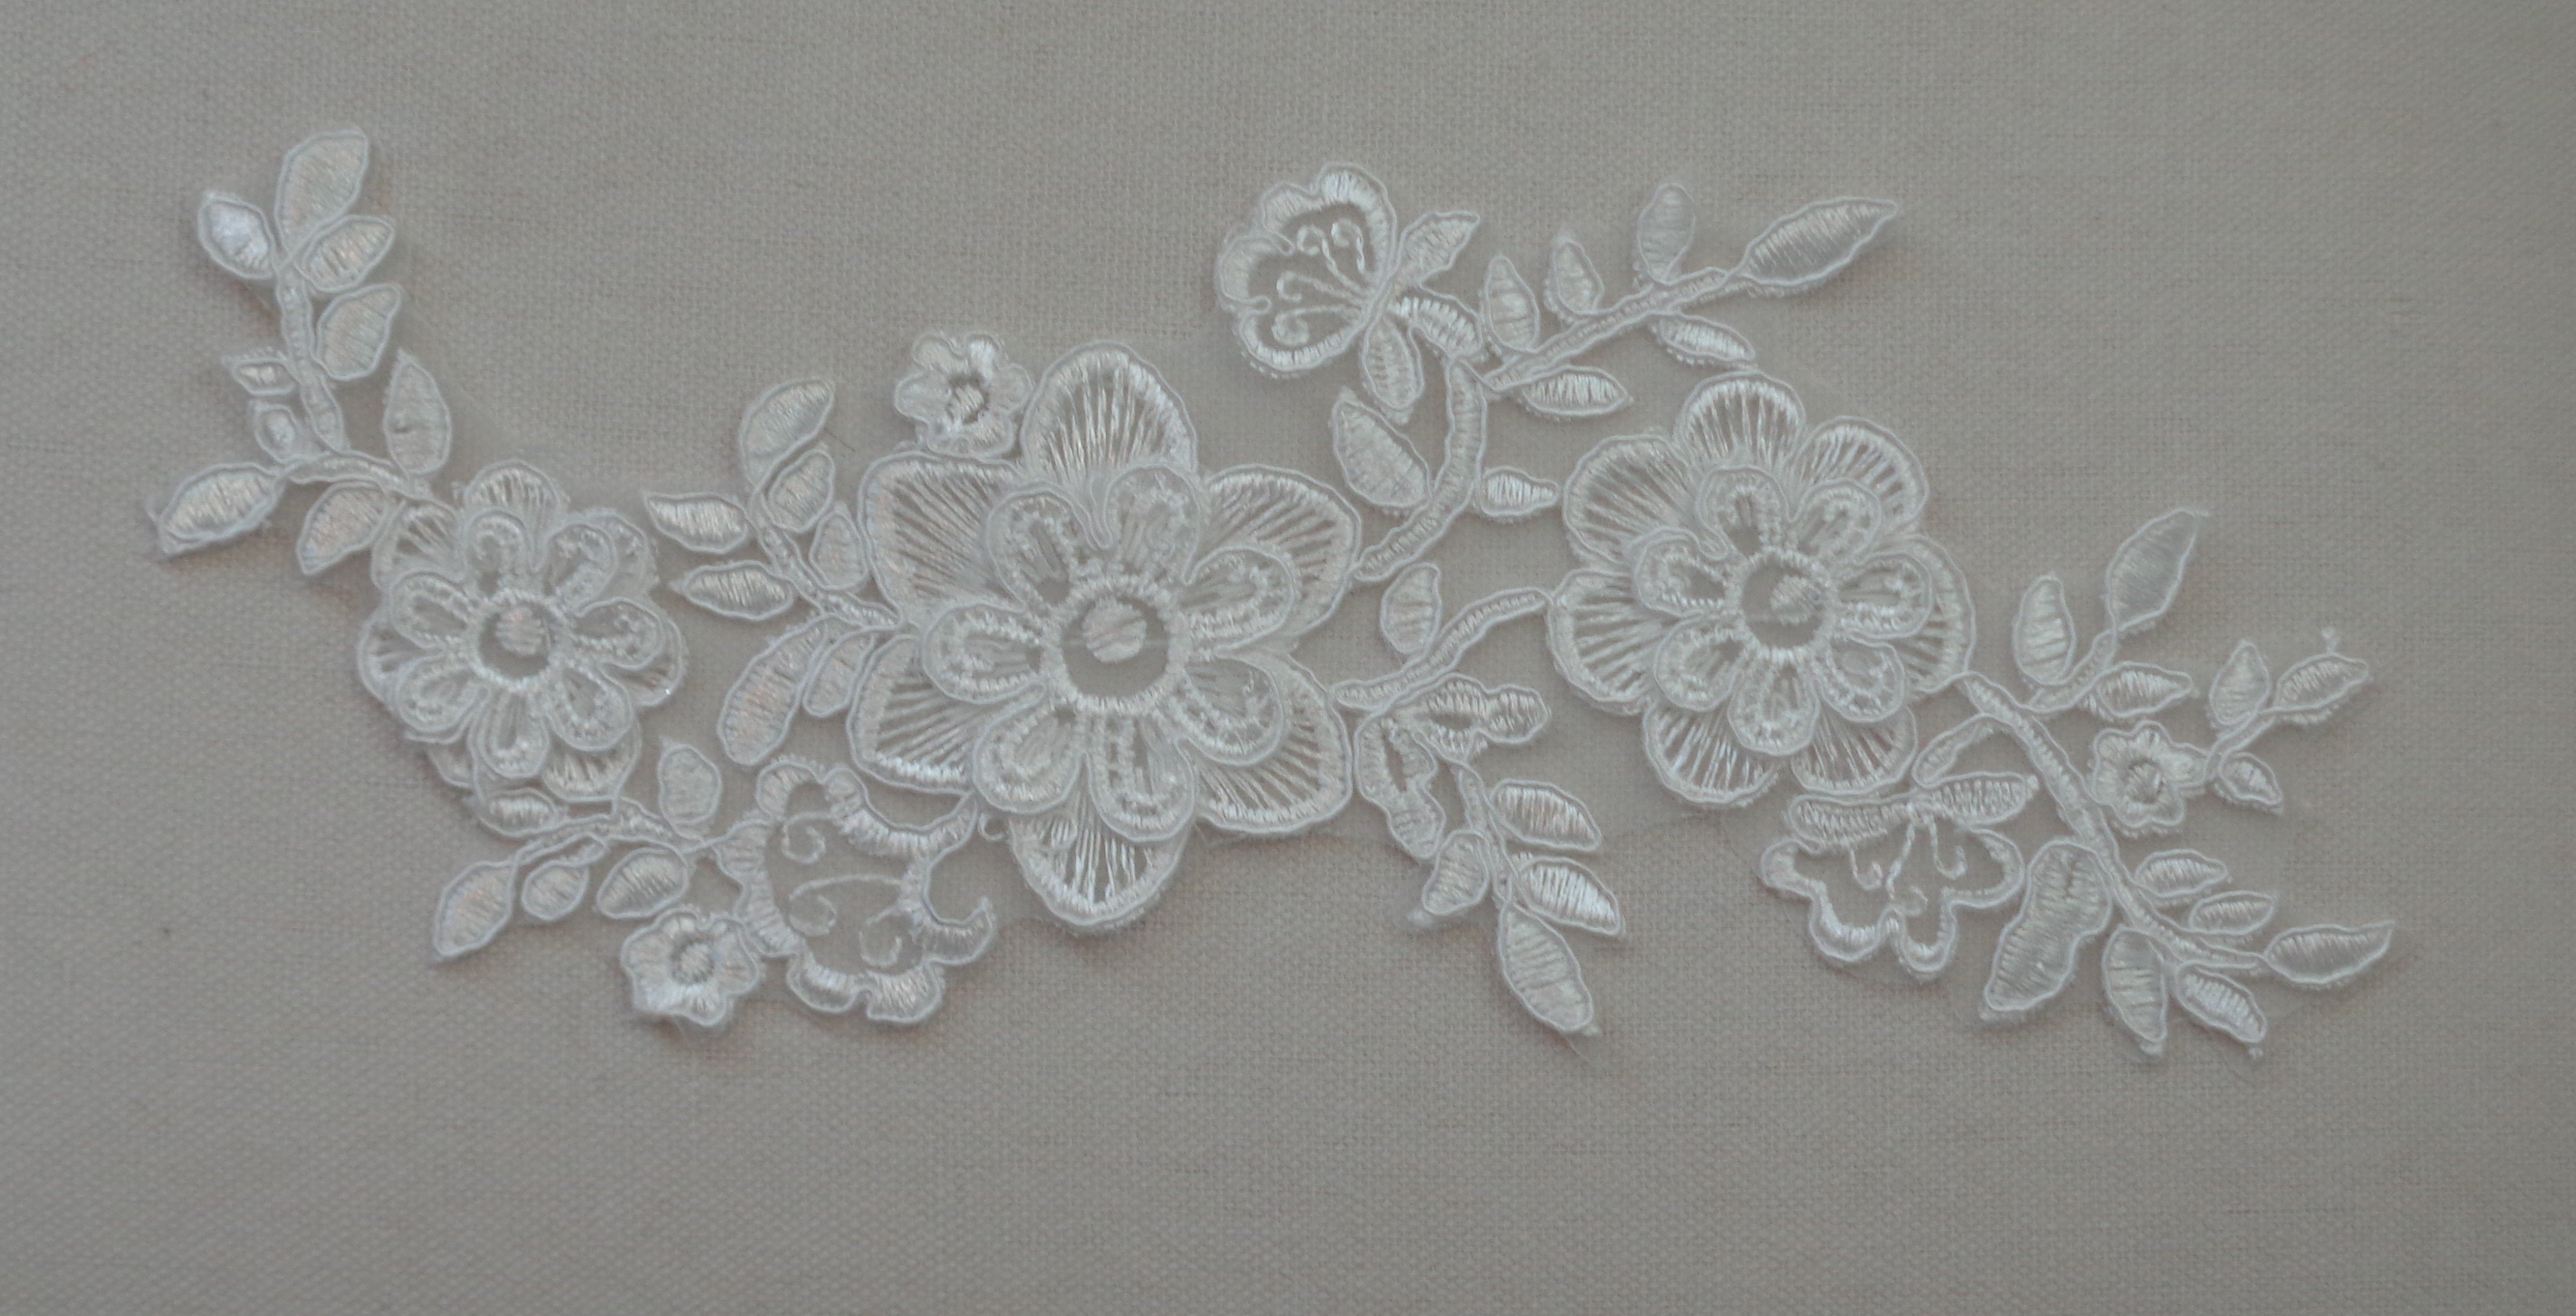 A piece of d floral layers ivory lace applique on organza